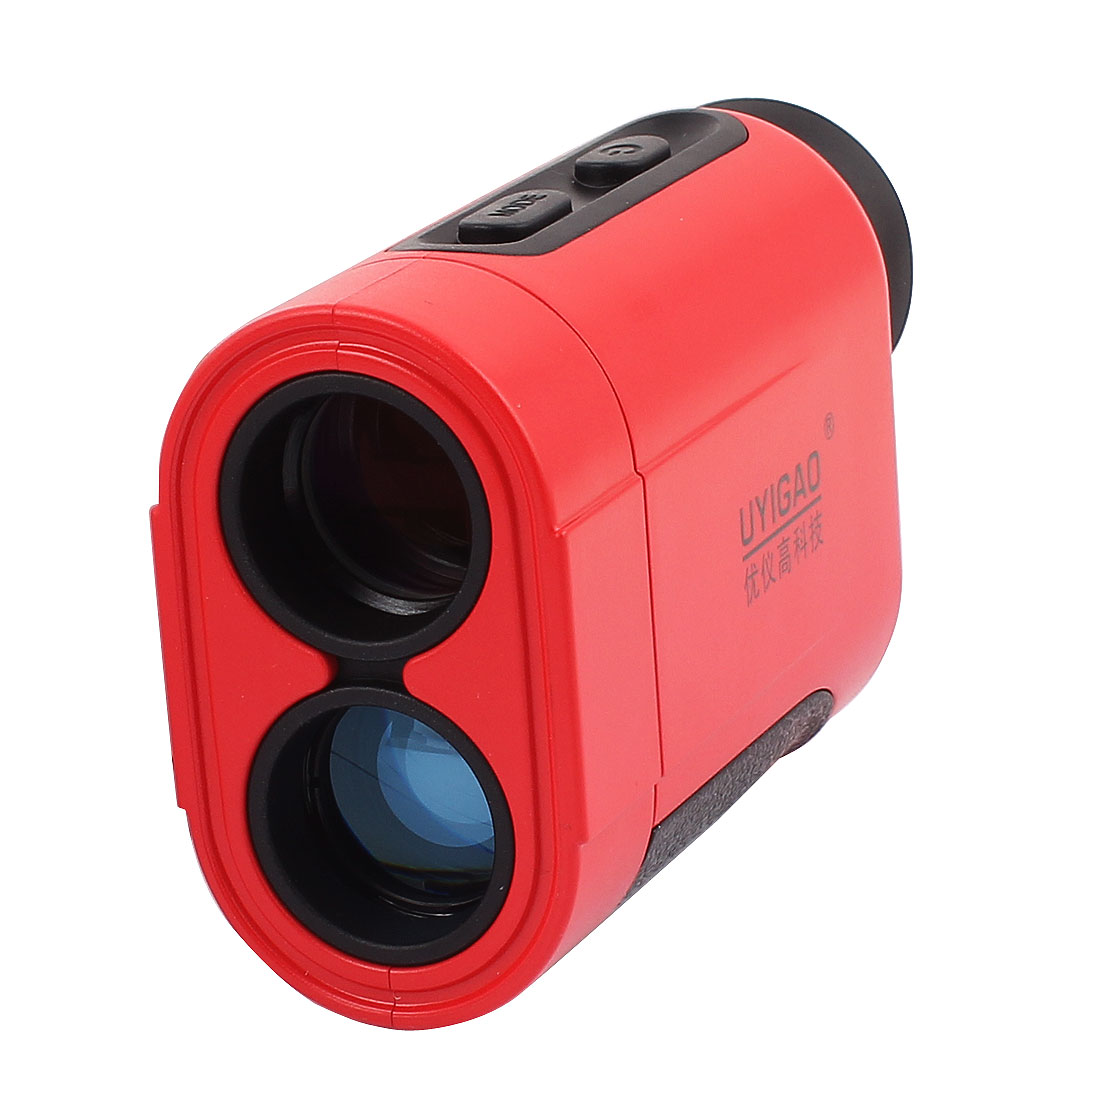 UYIGAO Authorized Outdoor Travel Handheld Dual Objective Lens Scan Mode Monocular Rangefinder 6X Magnification 1500M